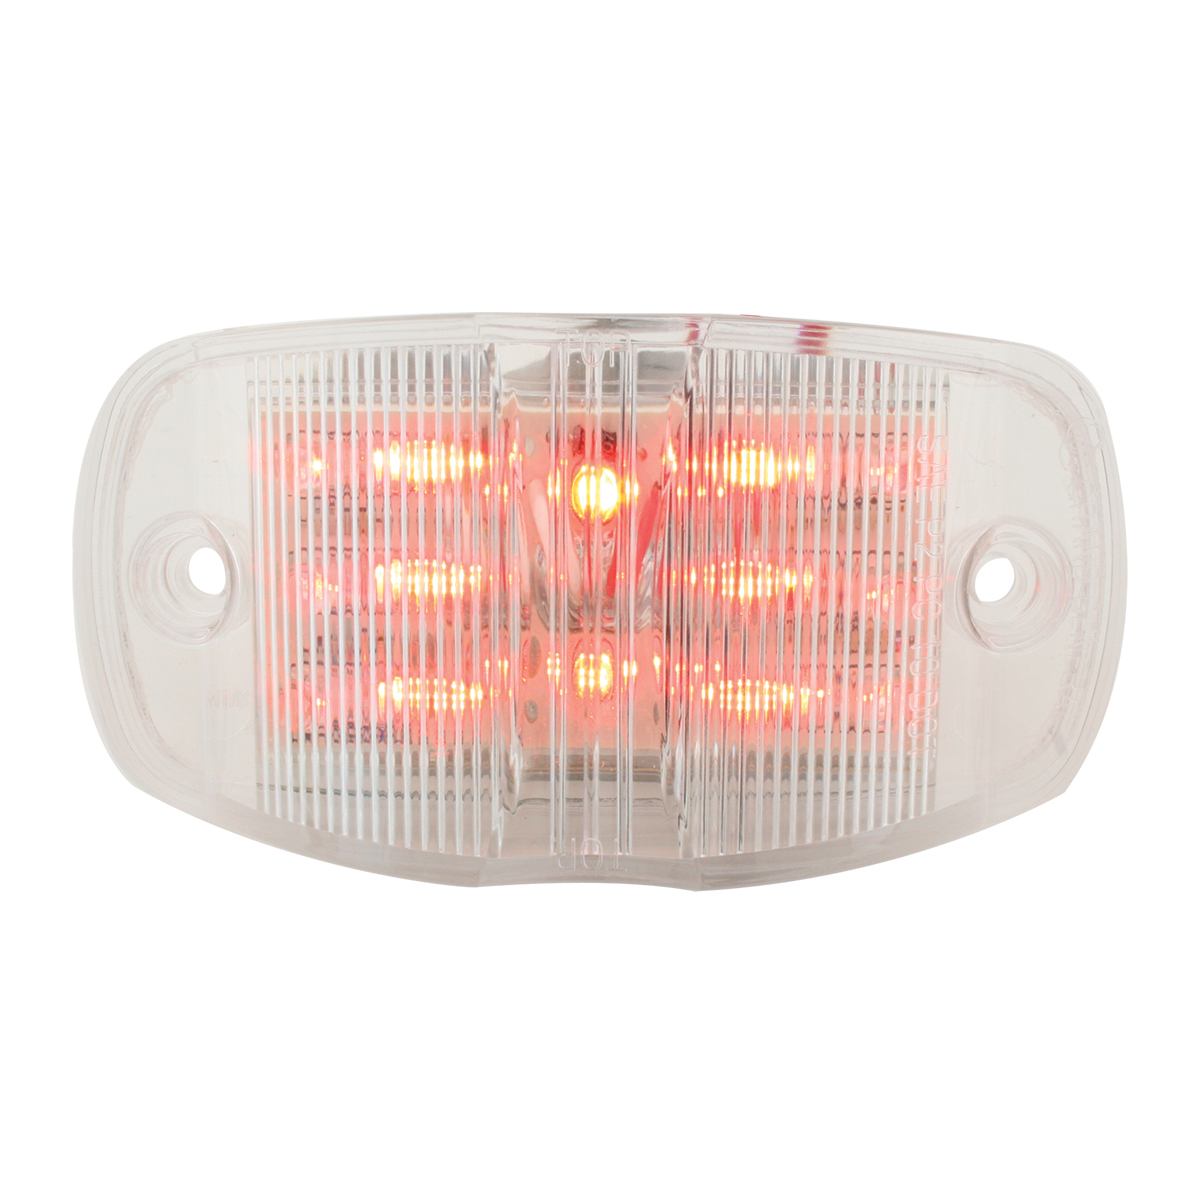 Rectangular Camel Back Wide Angle LED Marker Light in Red/Clear